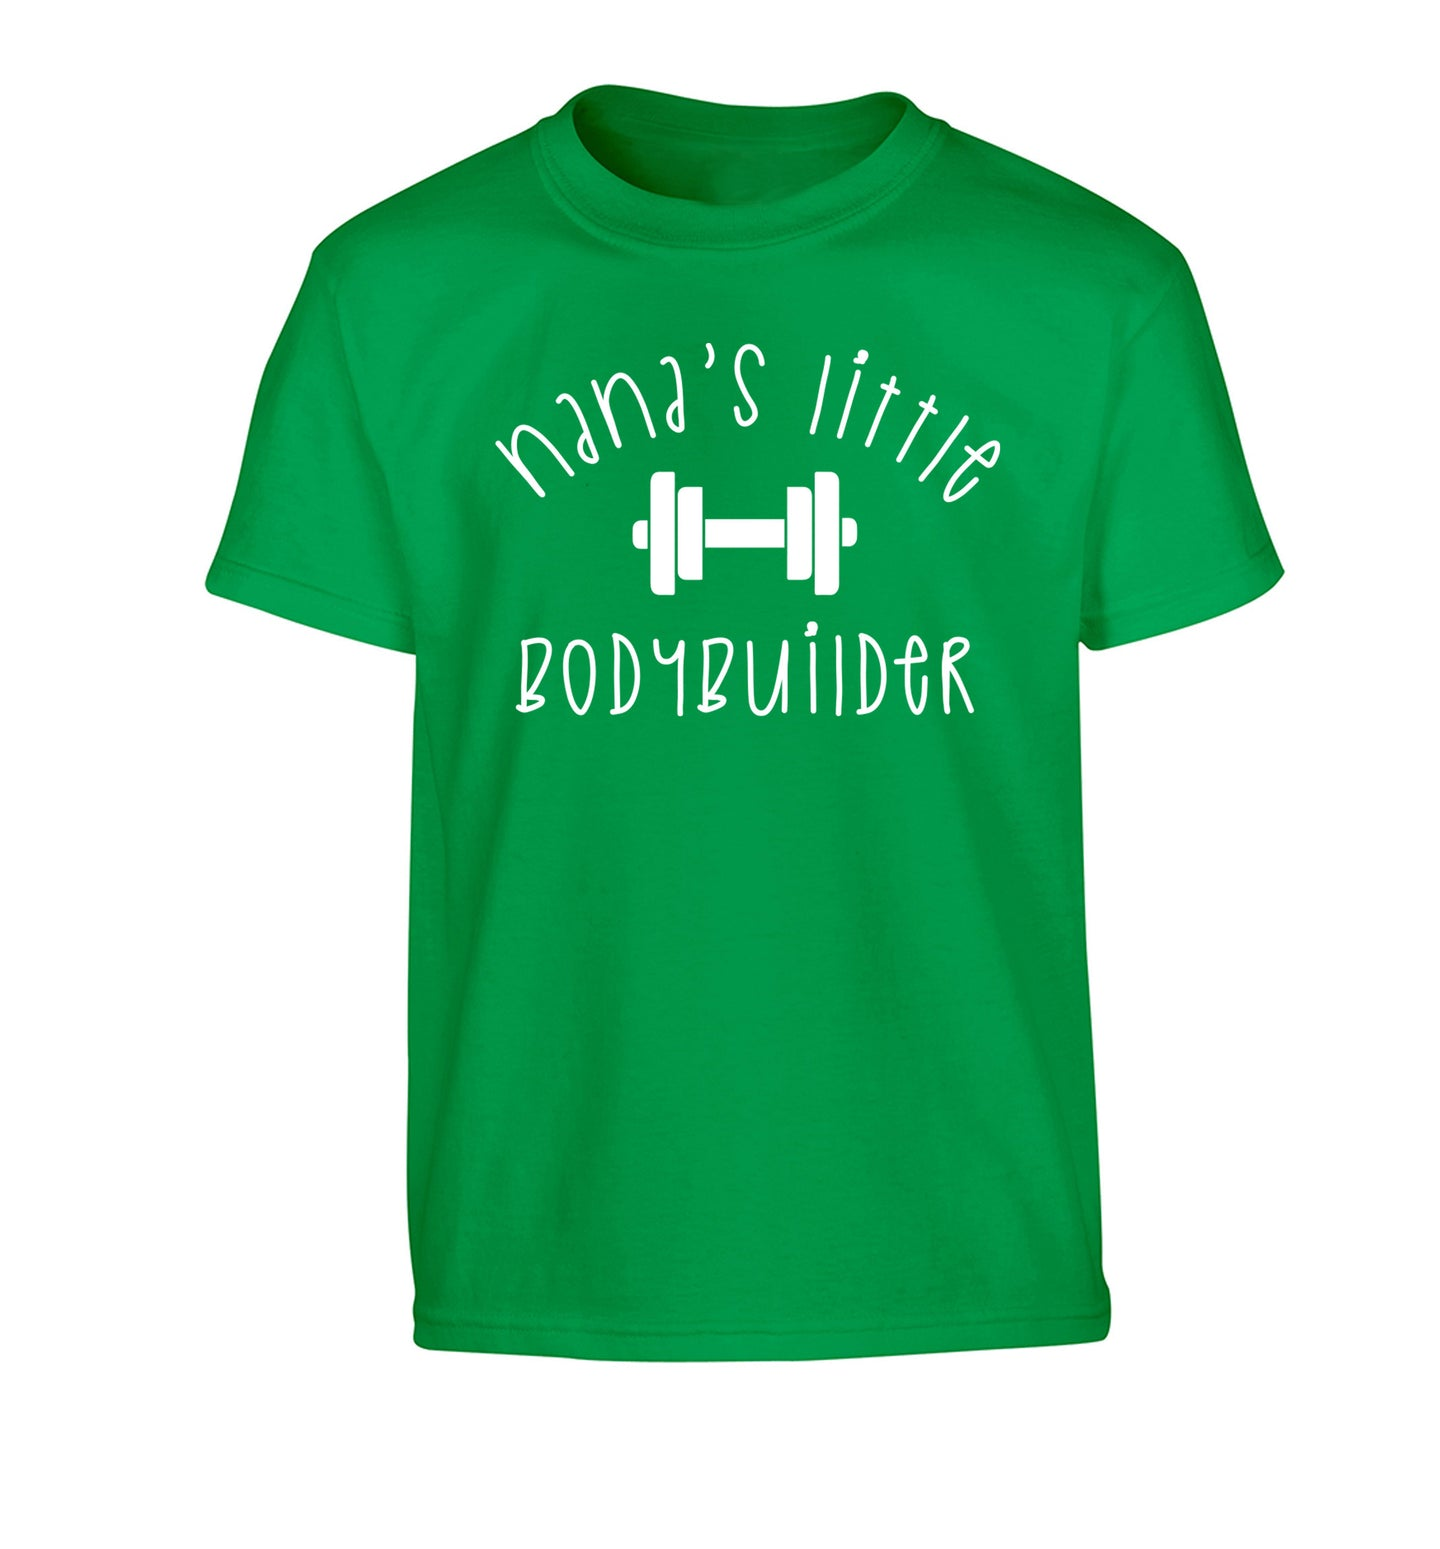 Nana's little bodybuilder Children's green Tshirt 12-14 Years